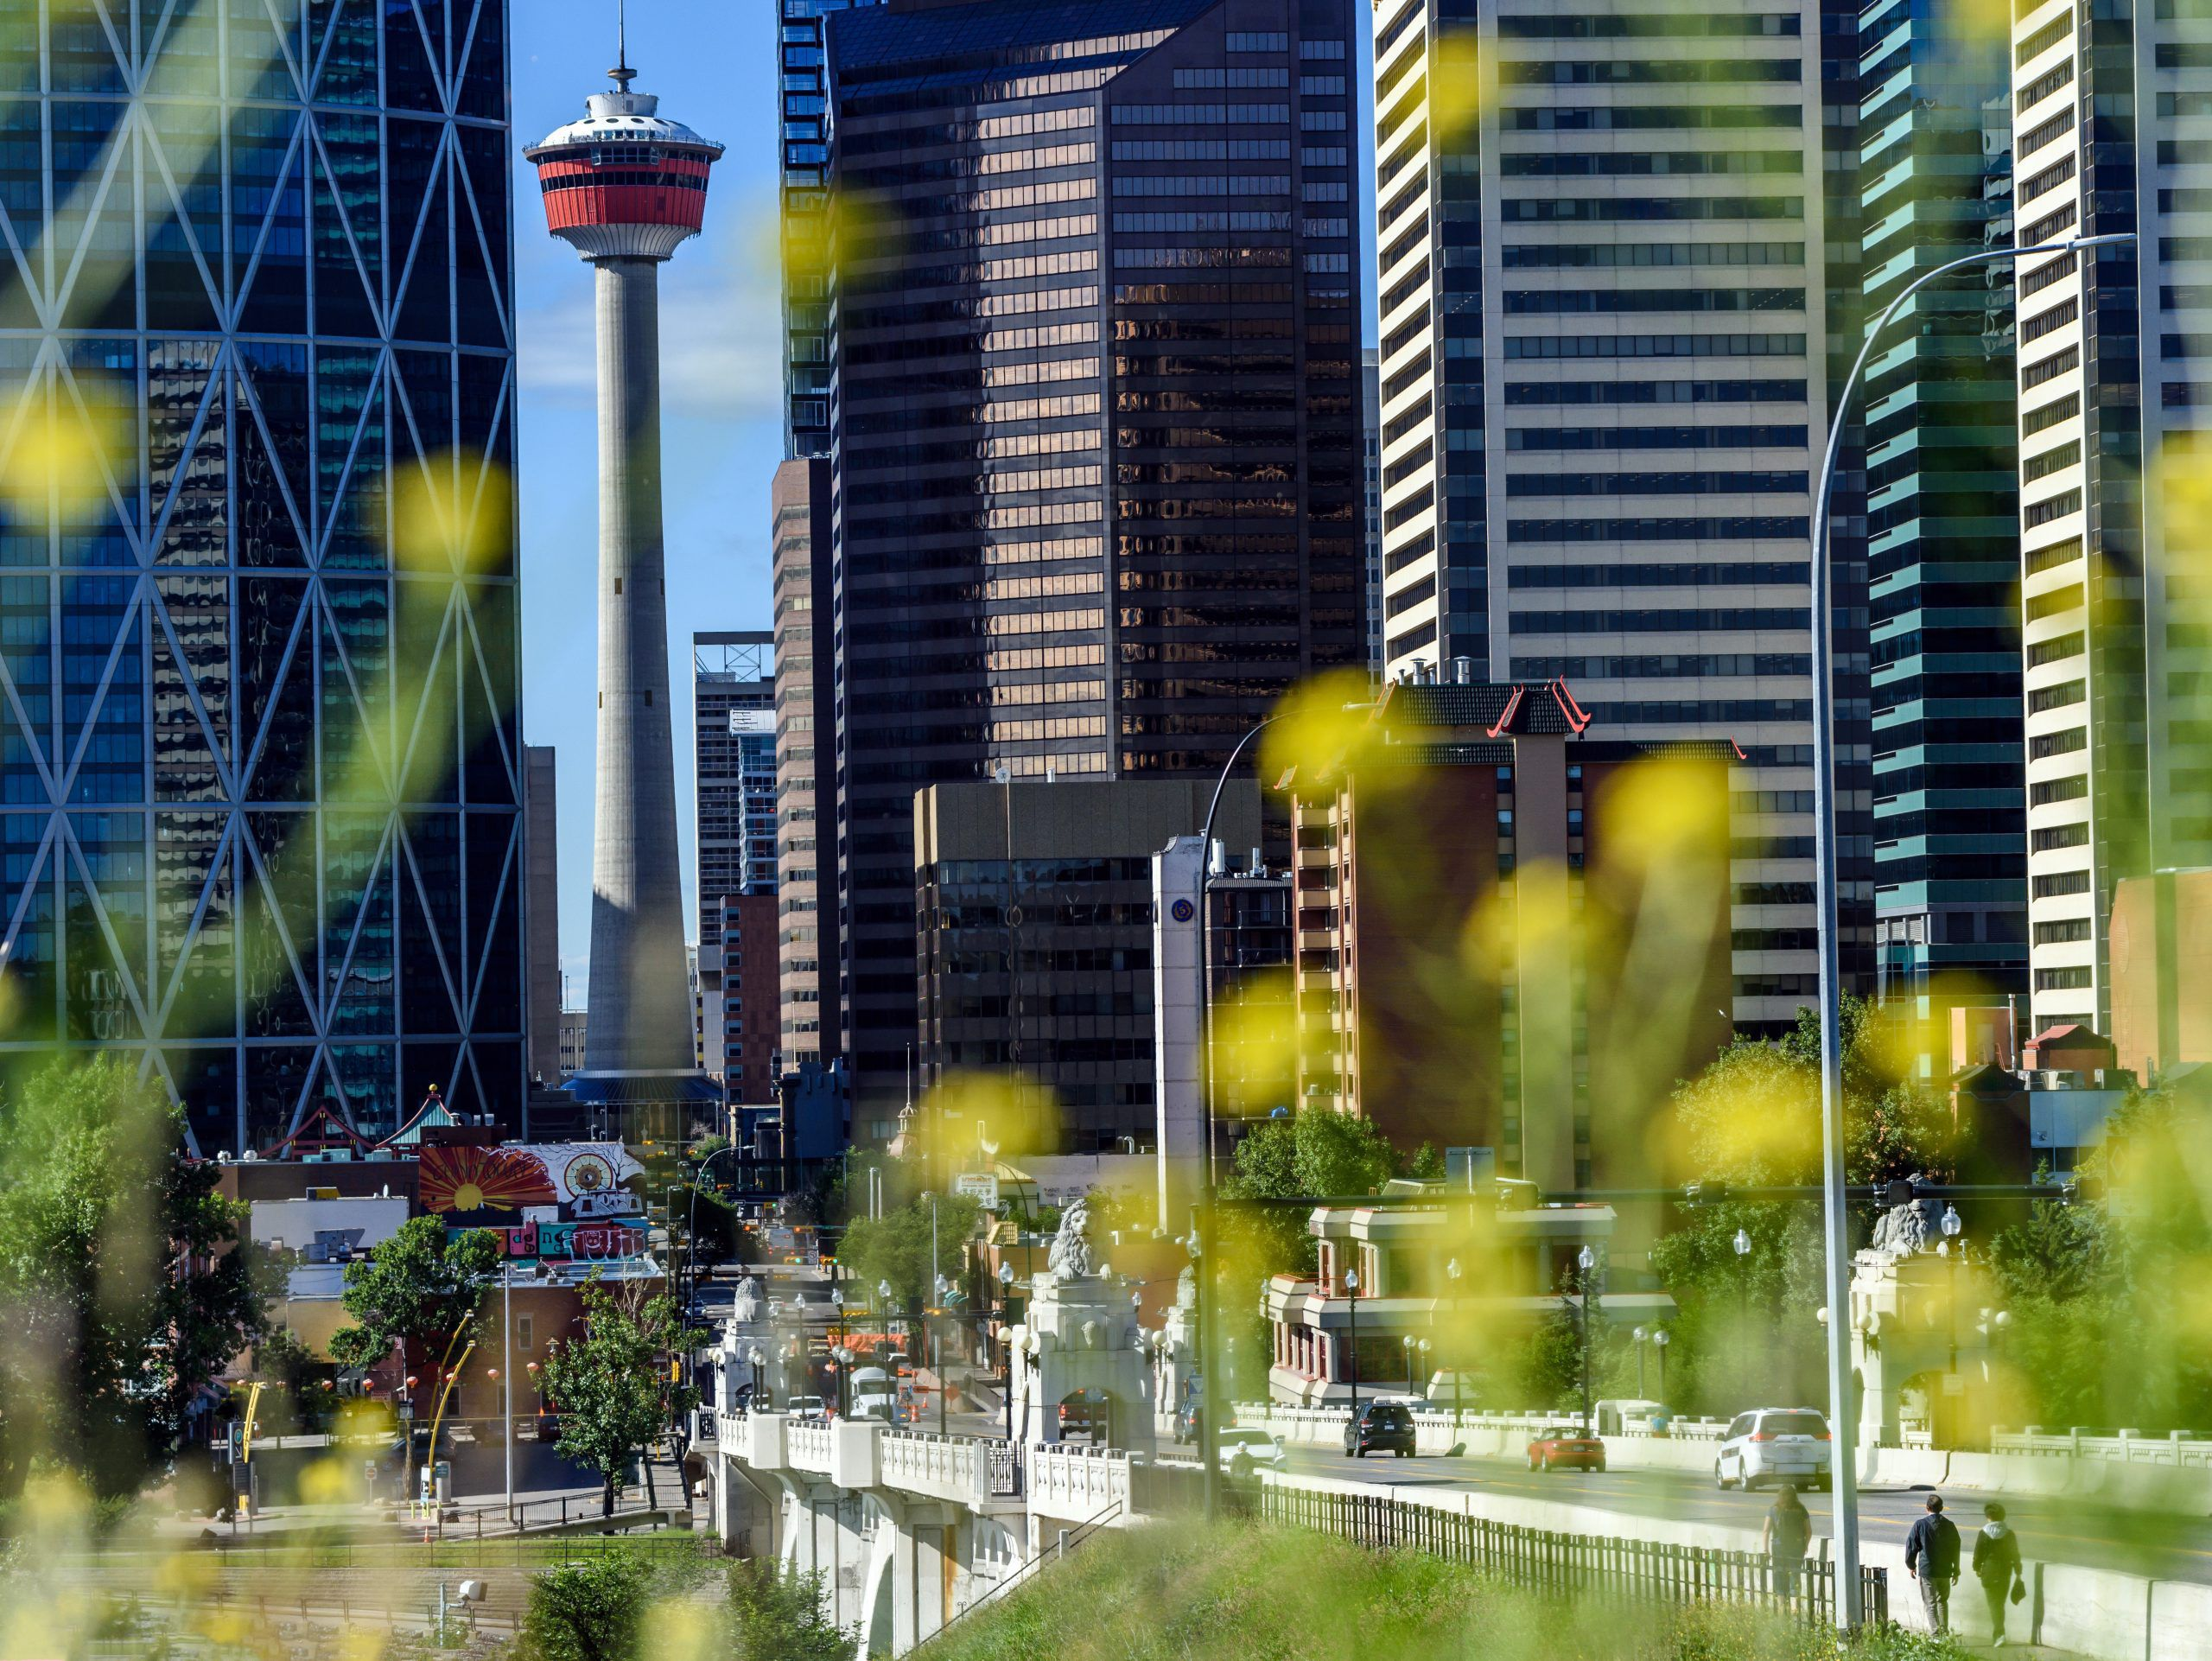 Calgary Downtown skyline and Centre Street Bridge was photographed on Friday, July 10, 2020. Azin Ghaffari/Postmedia